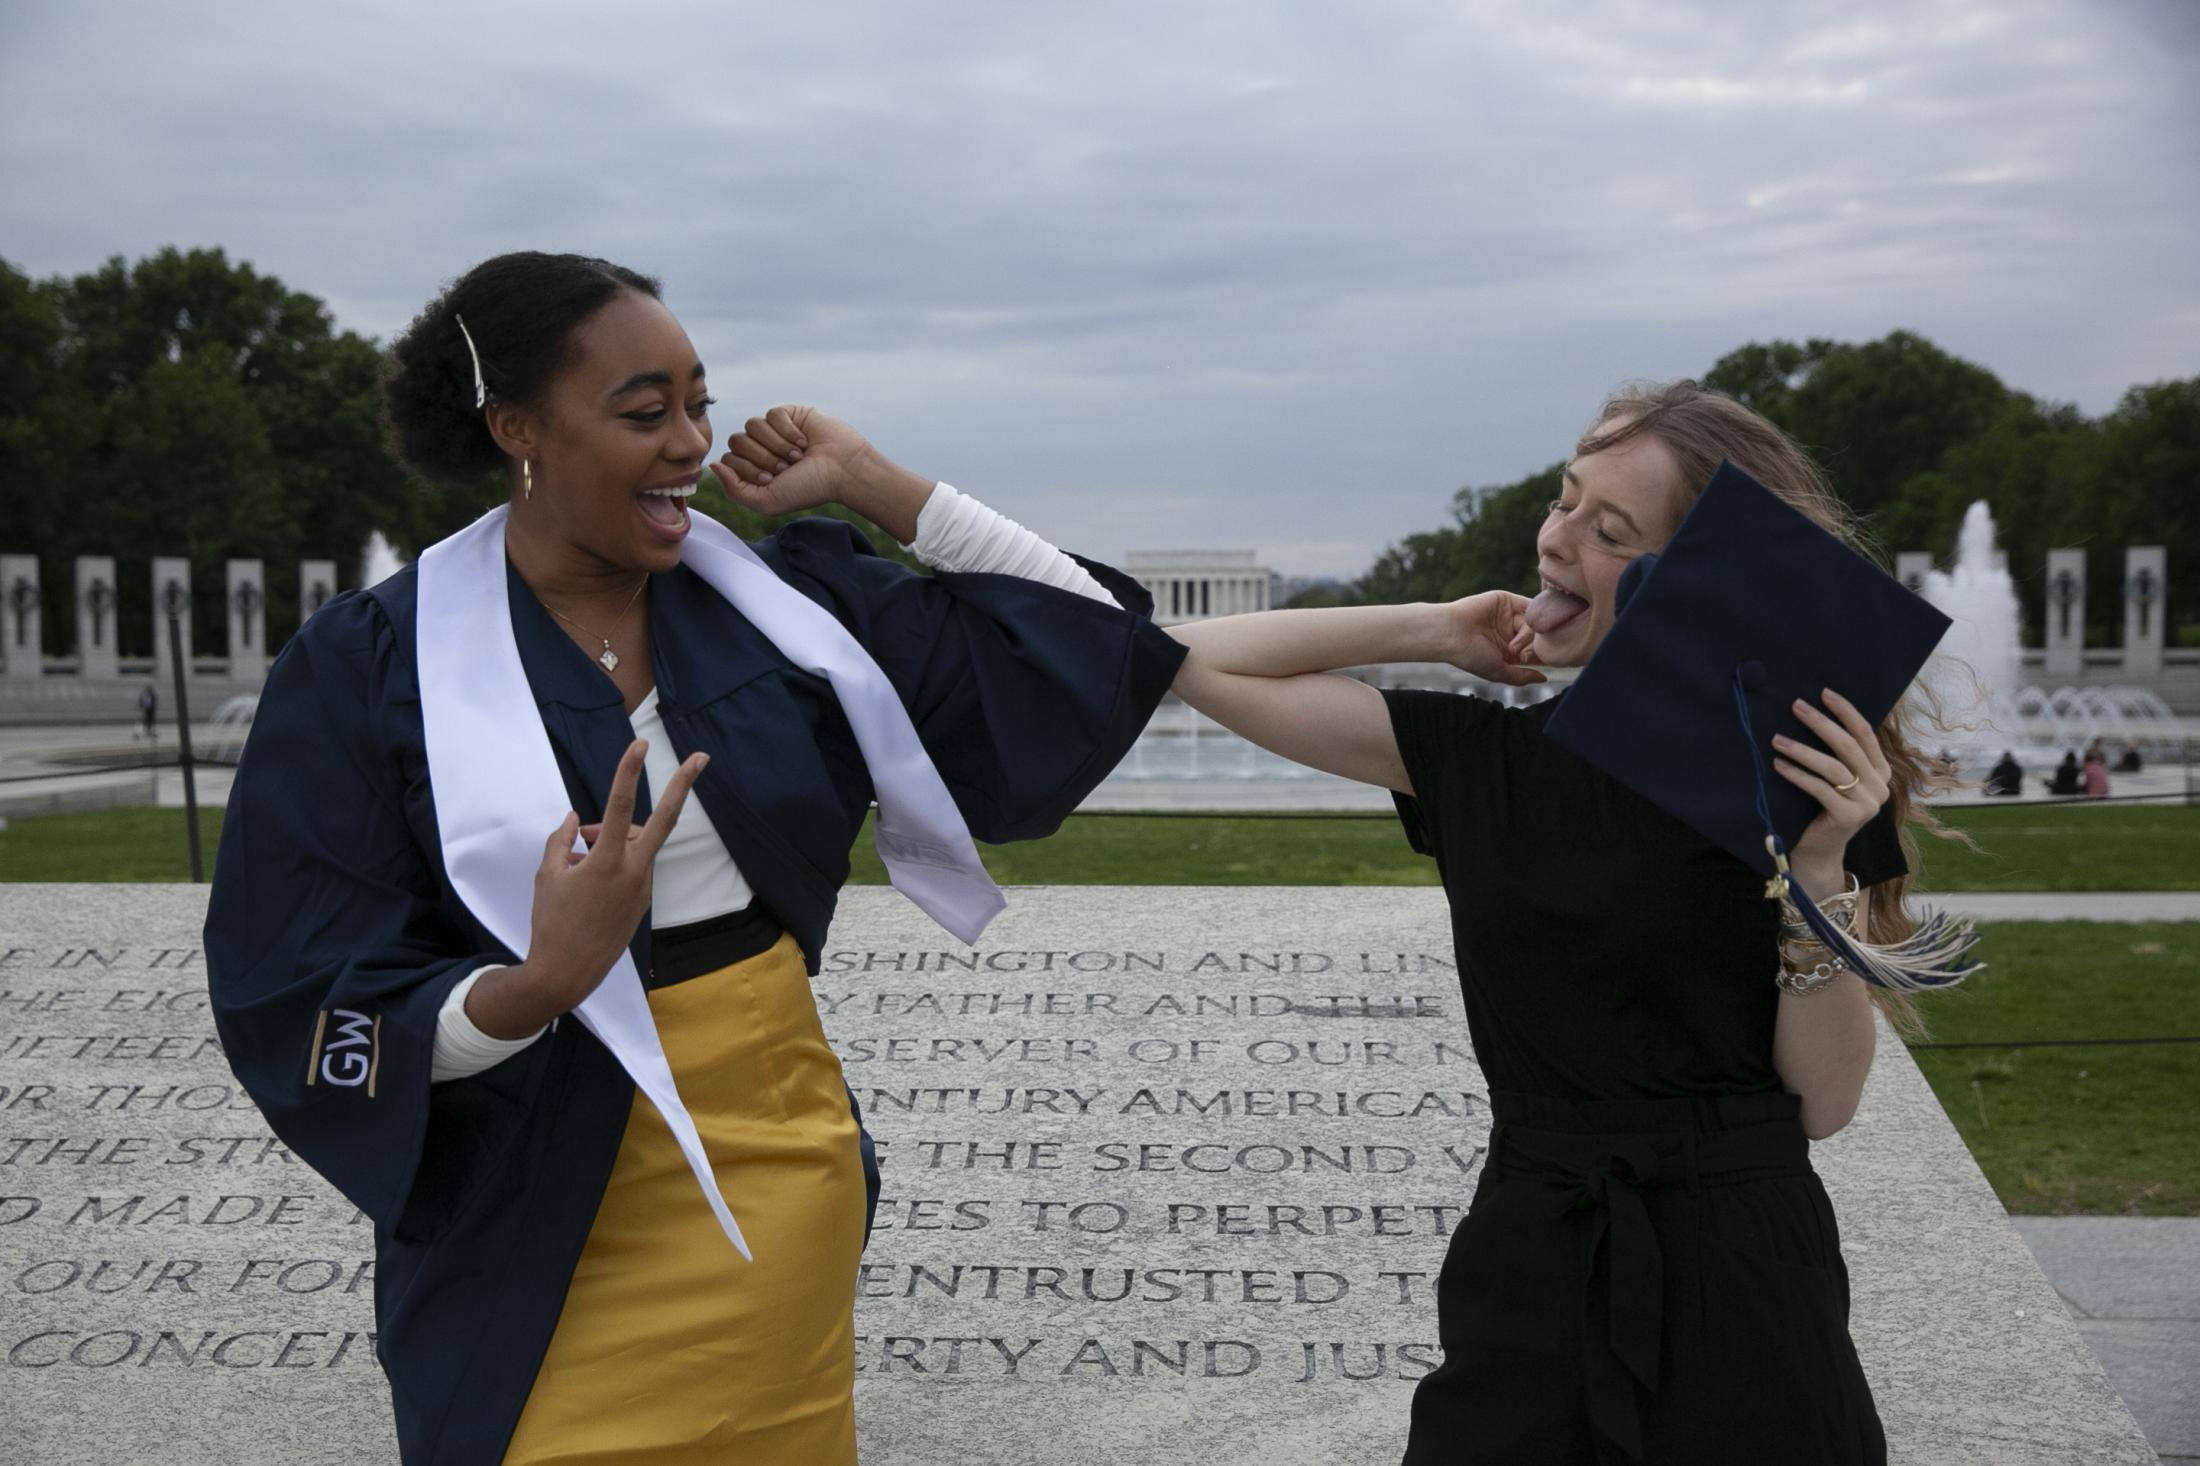 I met two new graduates, Geena and Kate, from George Washington University during a sunset walk near the Lincoln Memorial Reflecting Pool. There was a shortage of graduation gowns so they had to share a gown for photoshoots. This year, the pandemic made the ceremony virtual, sadly breaking the traditions of having the ceremony at the National Mall. It didn't stop them from celebrating the joy of graduation from college with their friends and classmates.